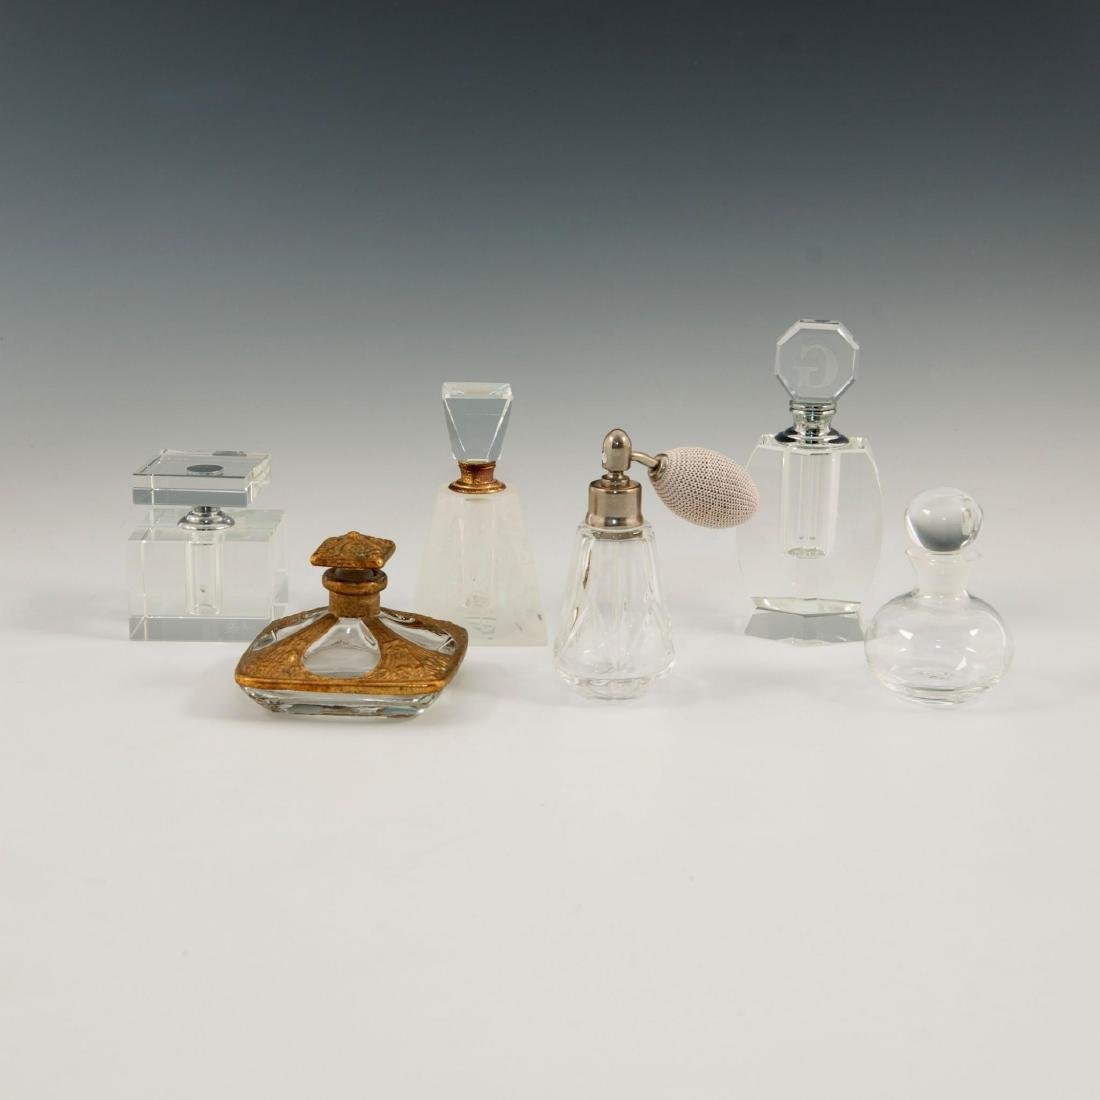 GROUP OF 12 CRYSTAL ART GLASS PERFUME BOTTLES LALIQUE - 3